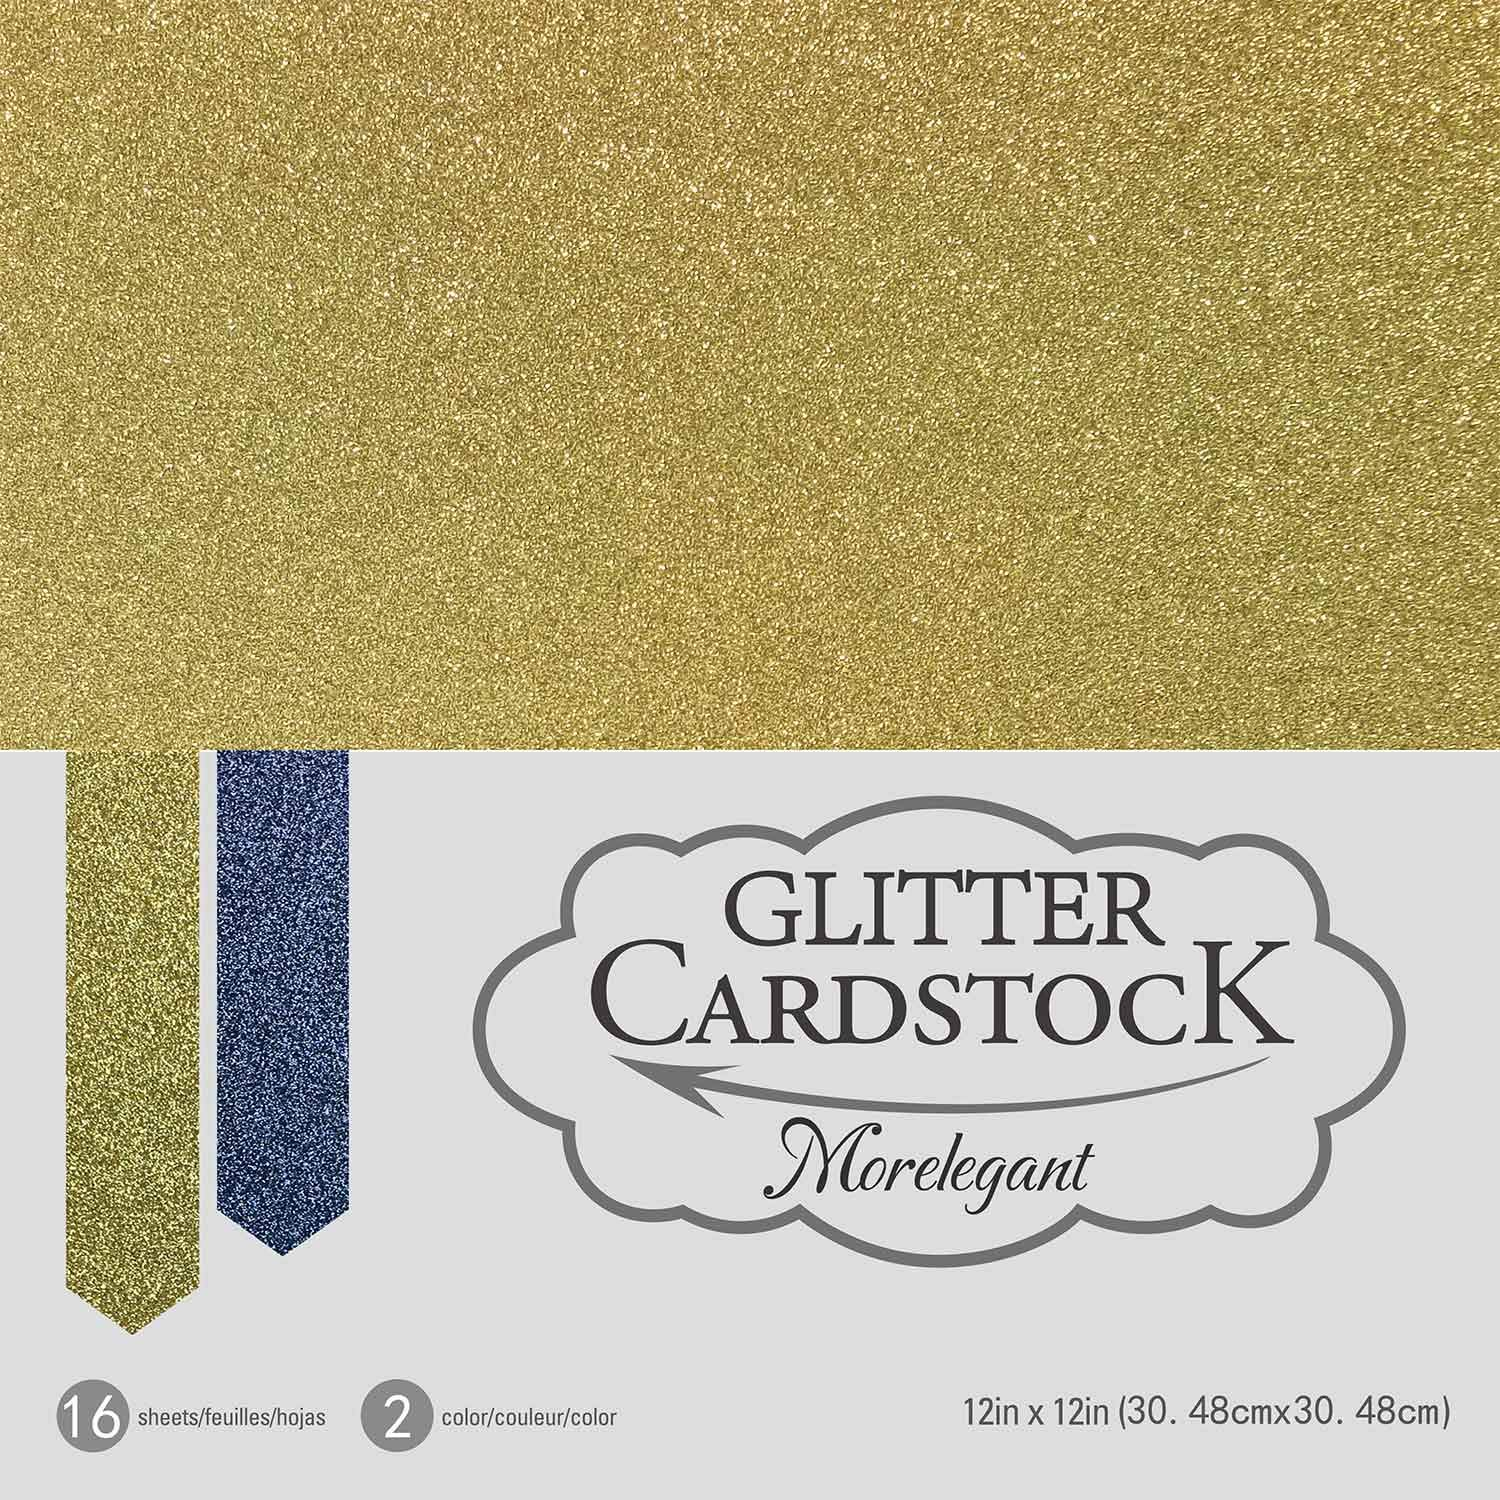 250gsm Heavy Cardstock Paper for DIY Craft Making Cake Topper Flowers Invitation Cards Party Banner Party Decoration 2 Colors 16 Pcs Gold and Black Glitter Cardstock 12x12 16 Sheets